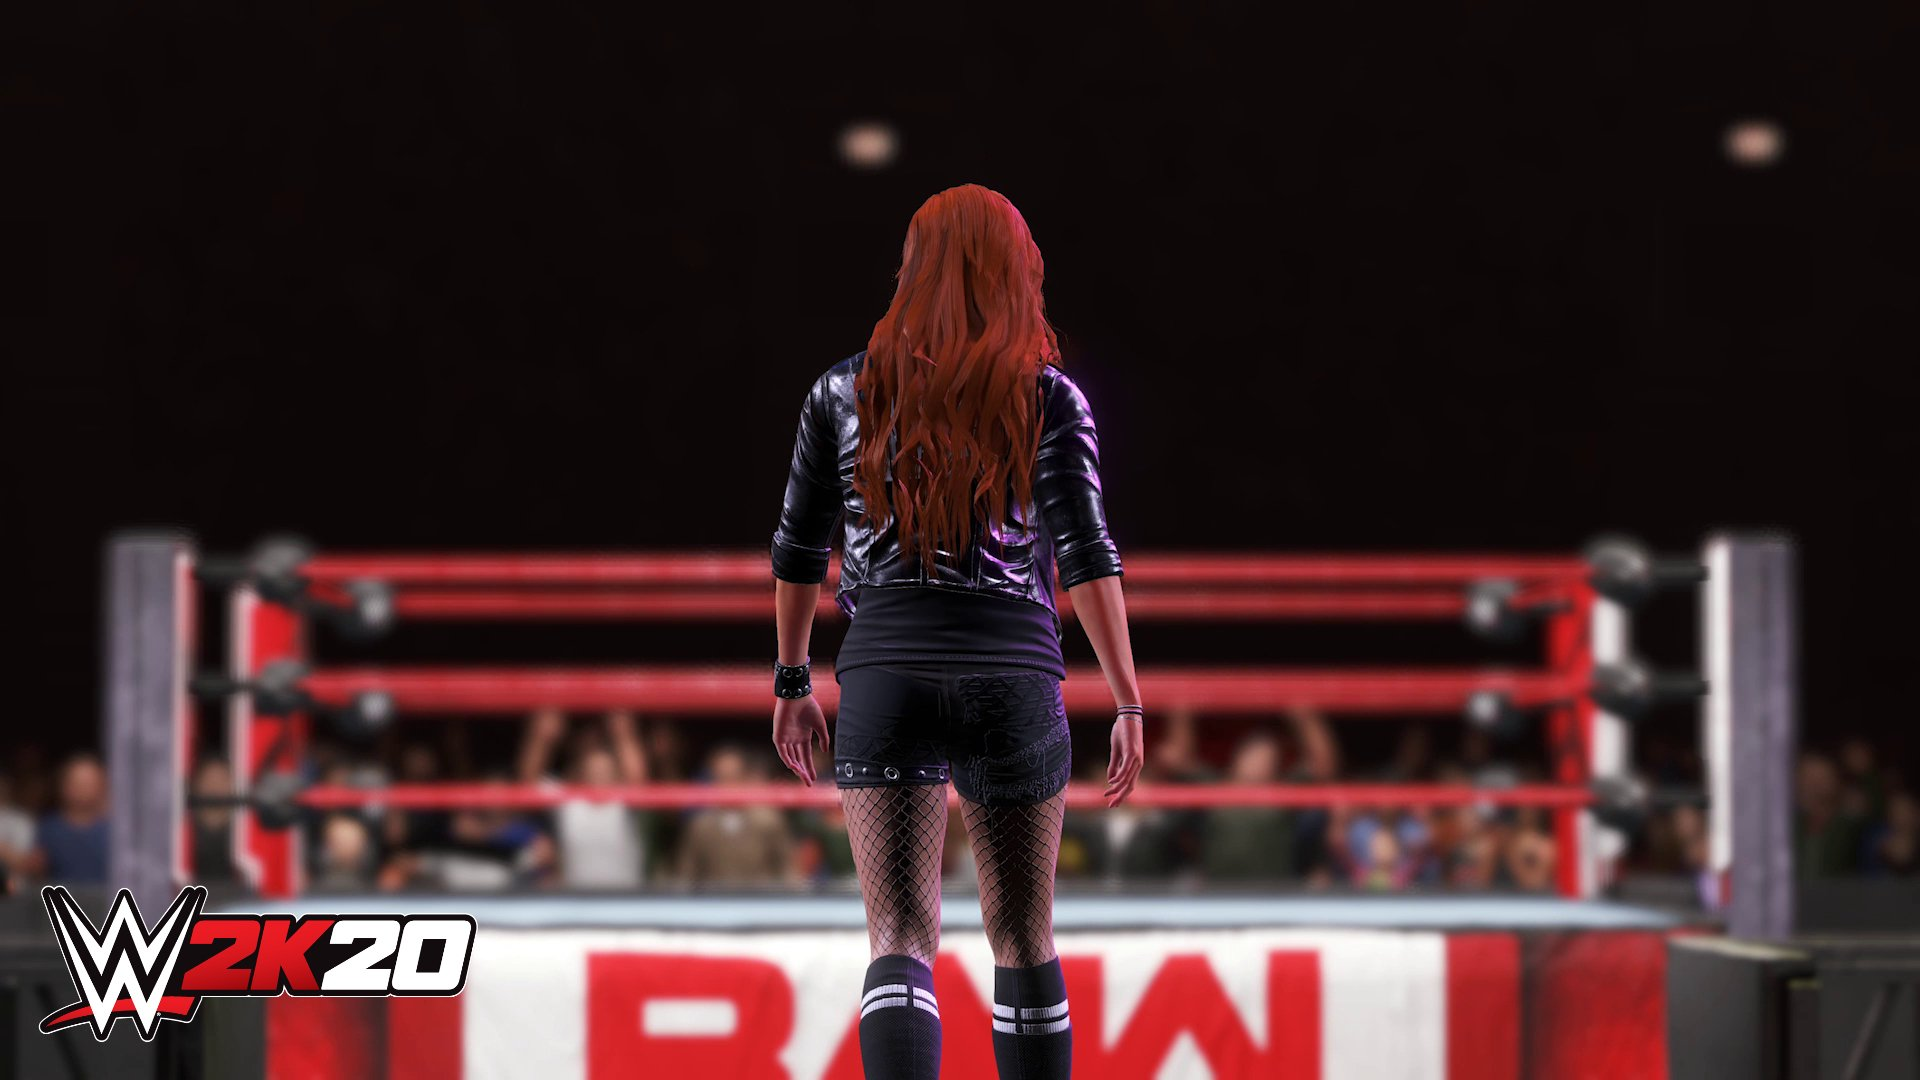 Finally the WWE 2K20 changes bring female superstars in career mode